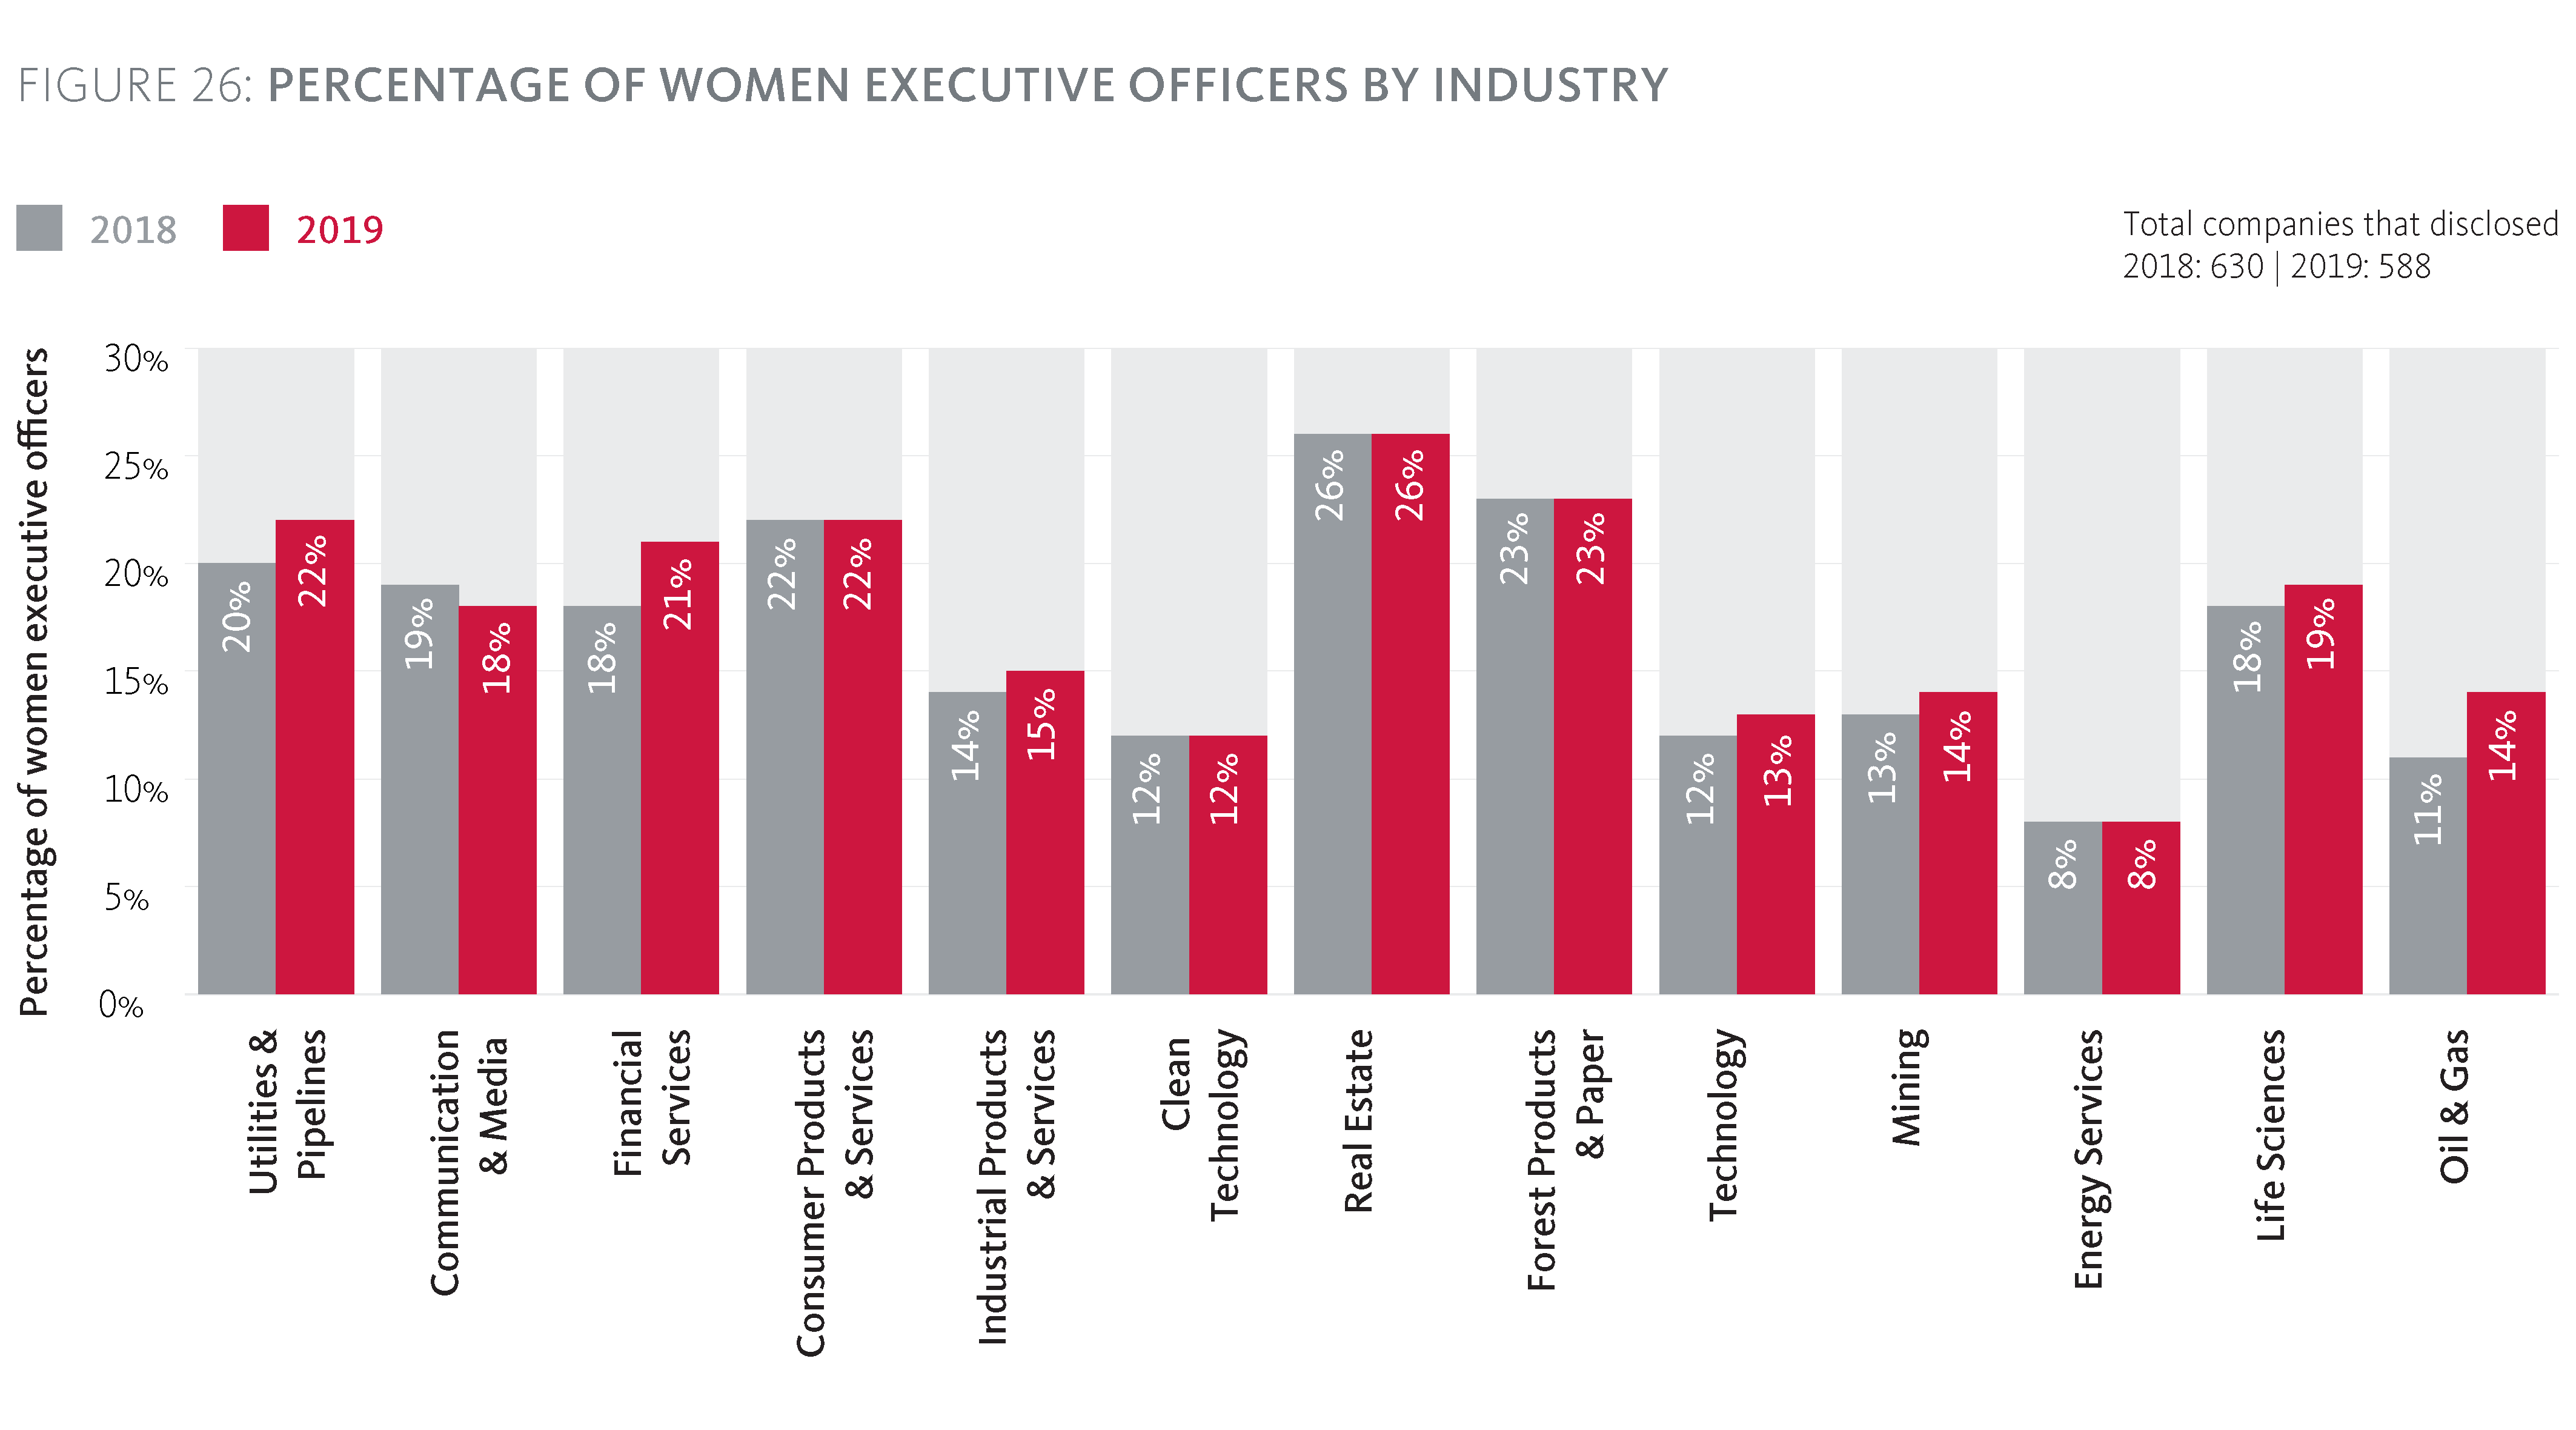 Percentage of women Executive Officers by Industry